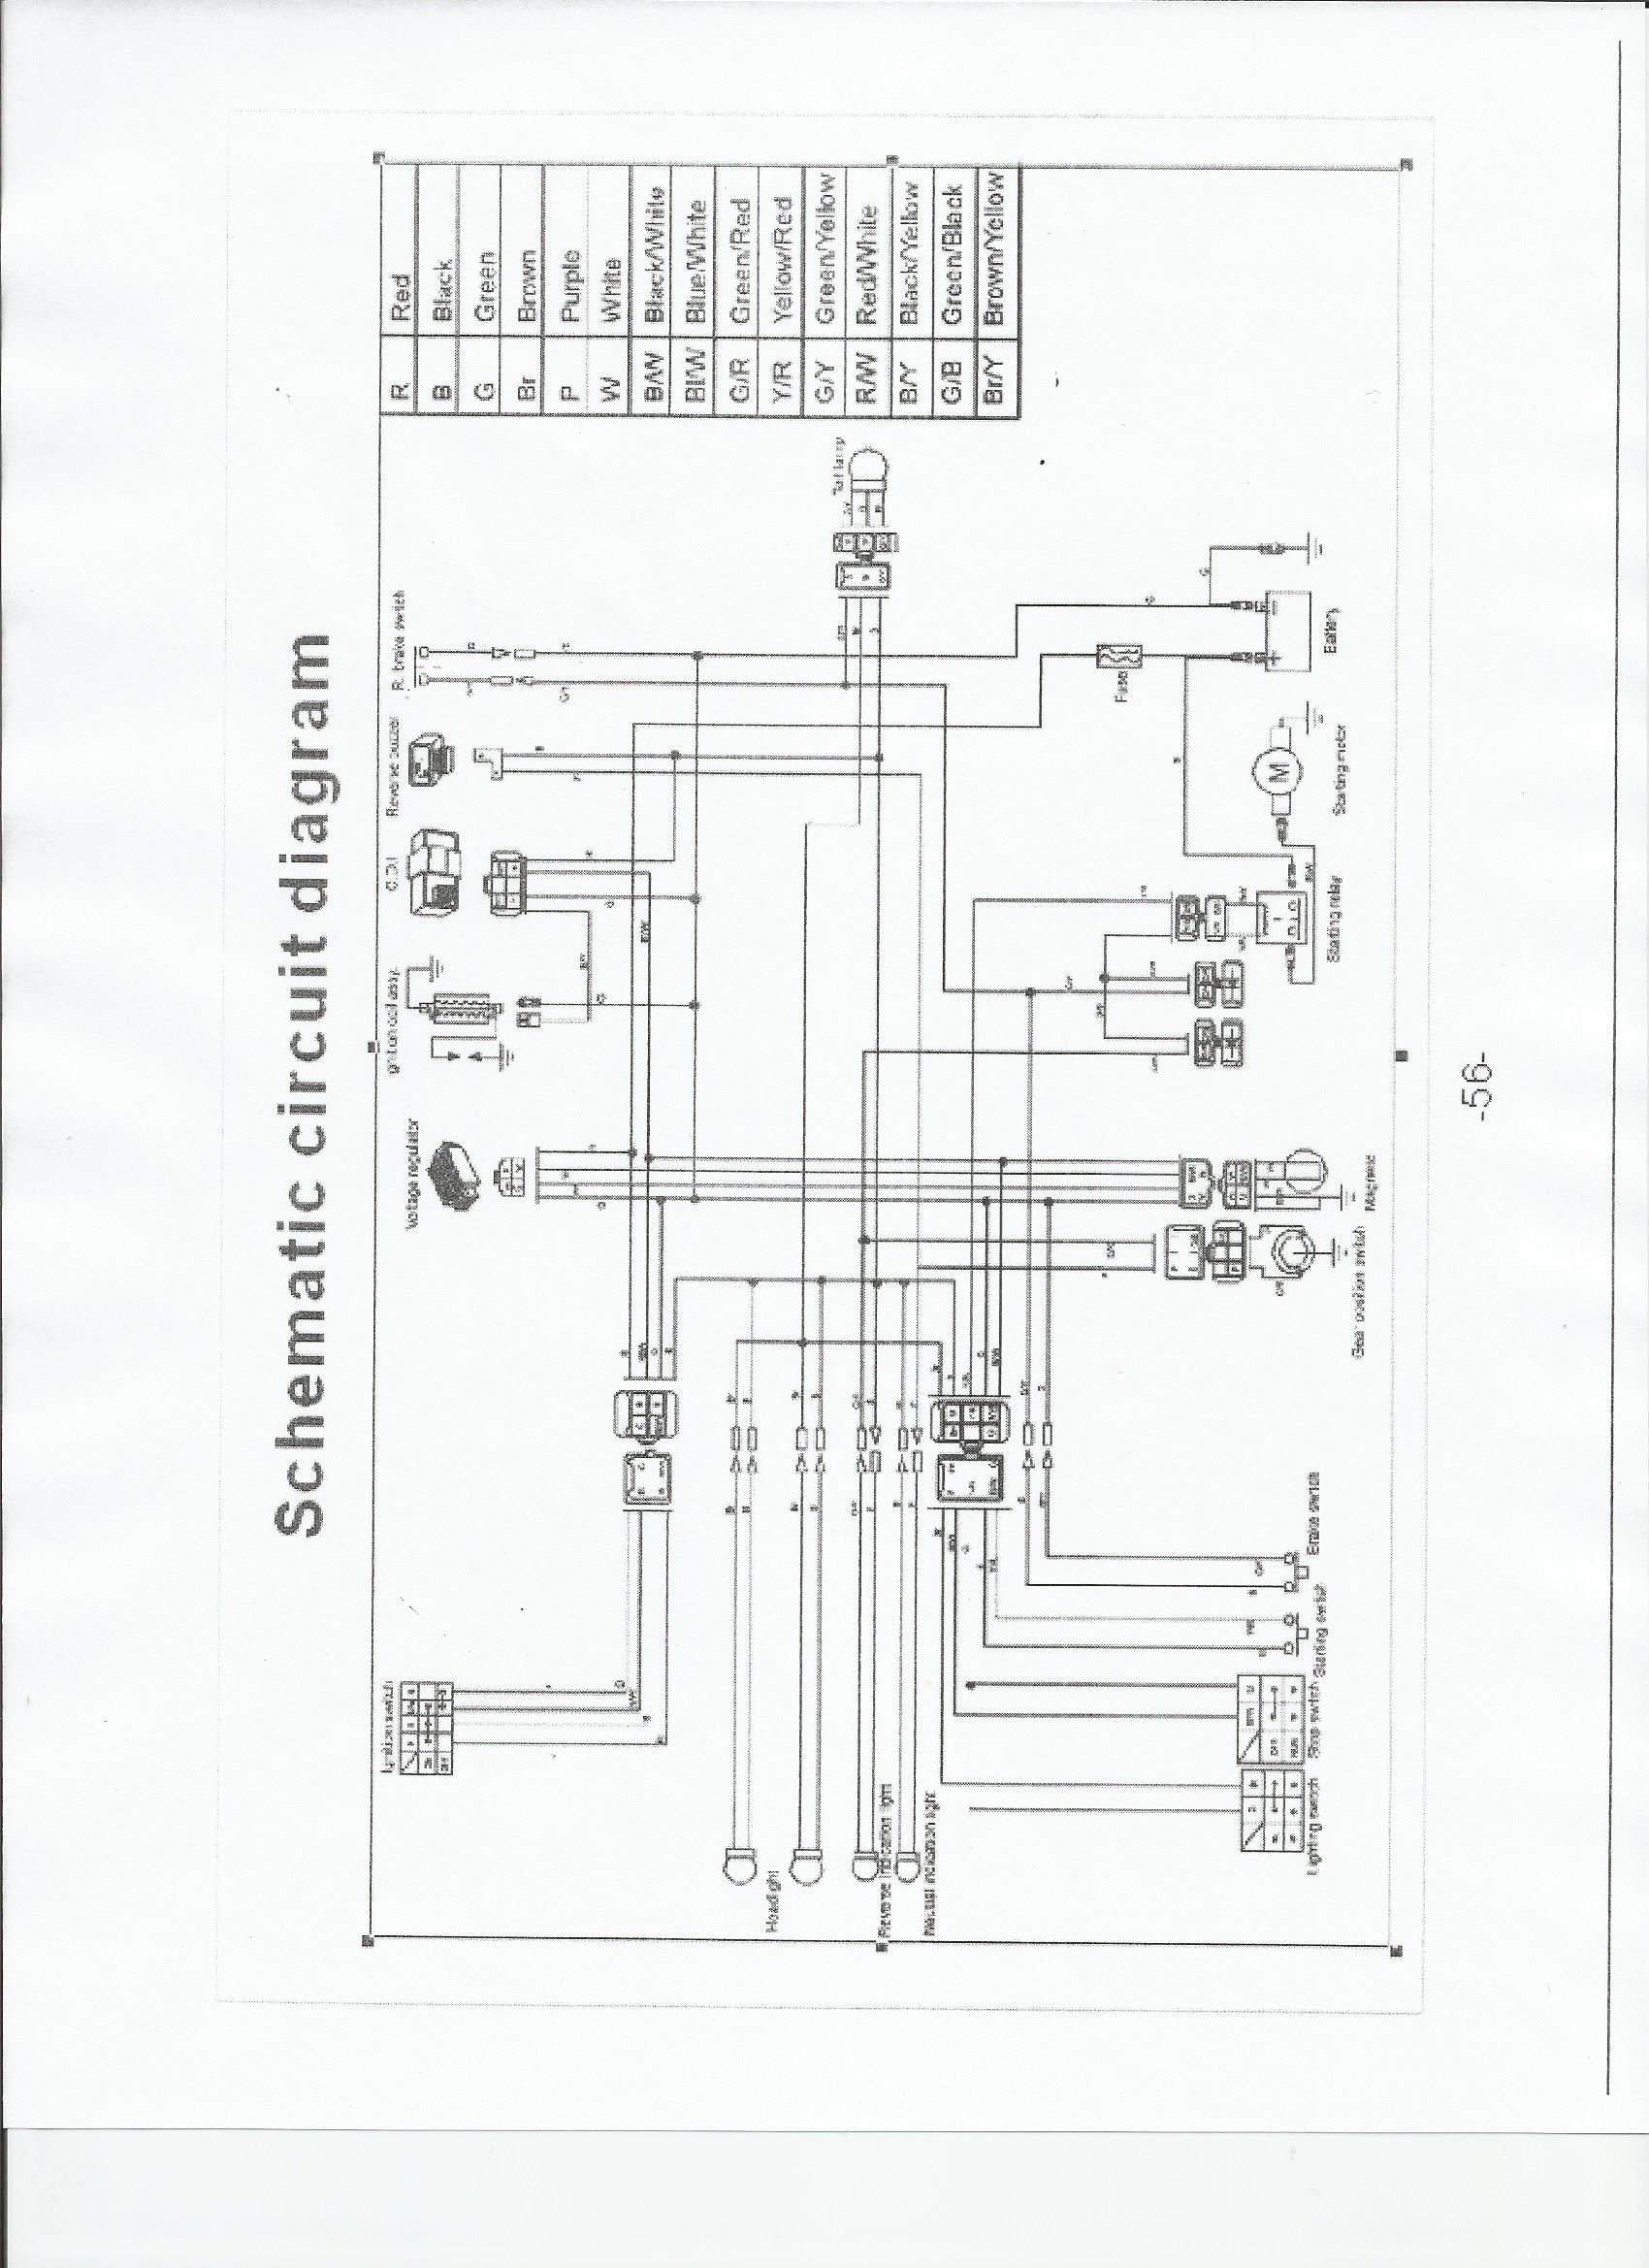 atv wiring schematics taotao mini and youth atv wiring schematic familygokarts support tao tao wiring schematic jpg